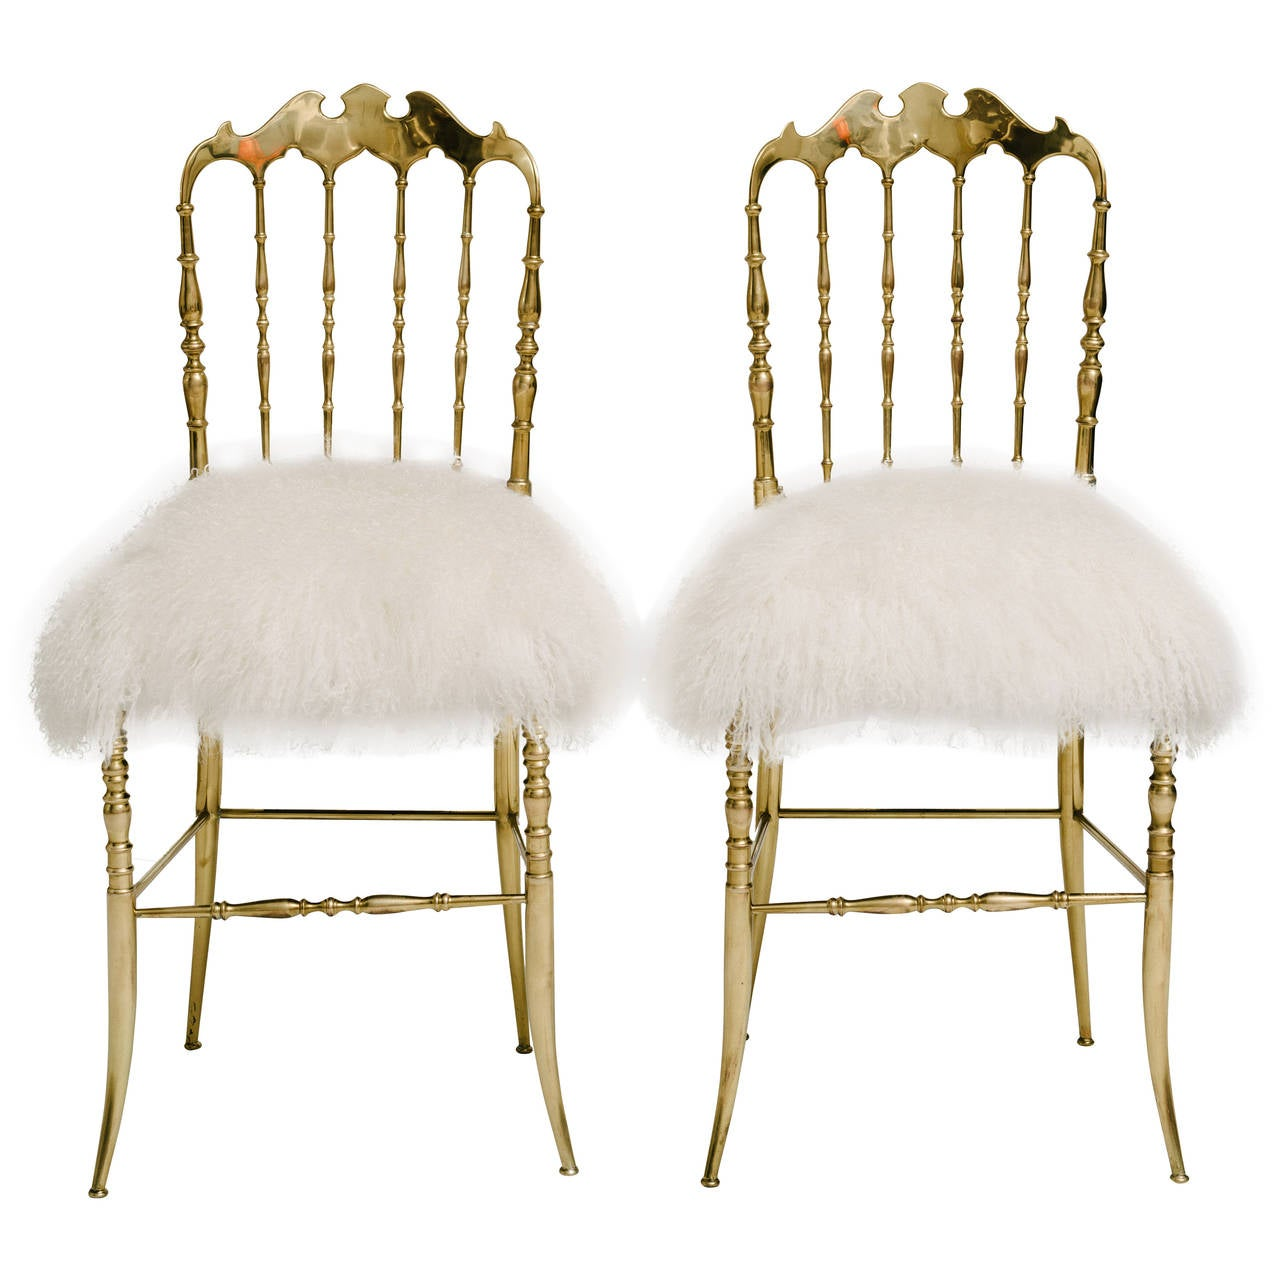 Pair Of Brass Chiavari Chairs In Mongolian Fur At 1stdibs